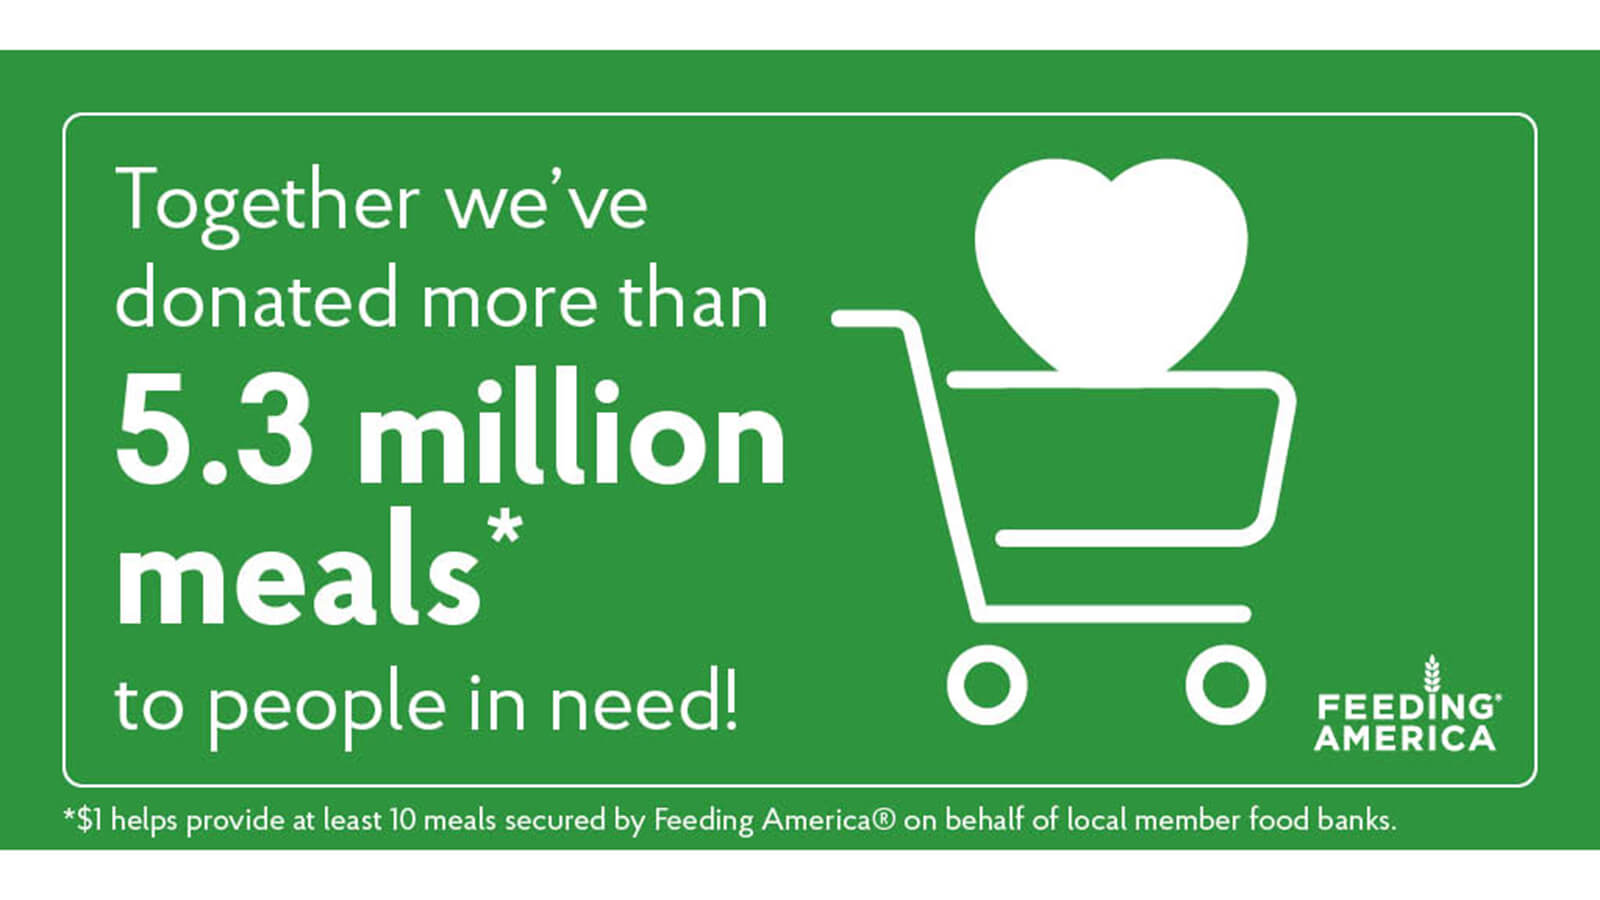 Together we've donated more than 5.3 million meals to people in need. $1 helps provide at least 10 meals secured by Feeding America on behalf of local member food banks.